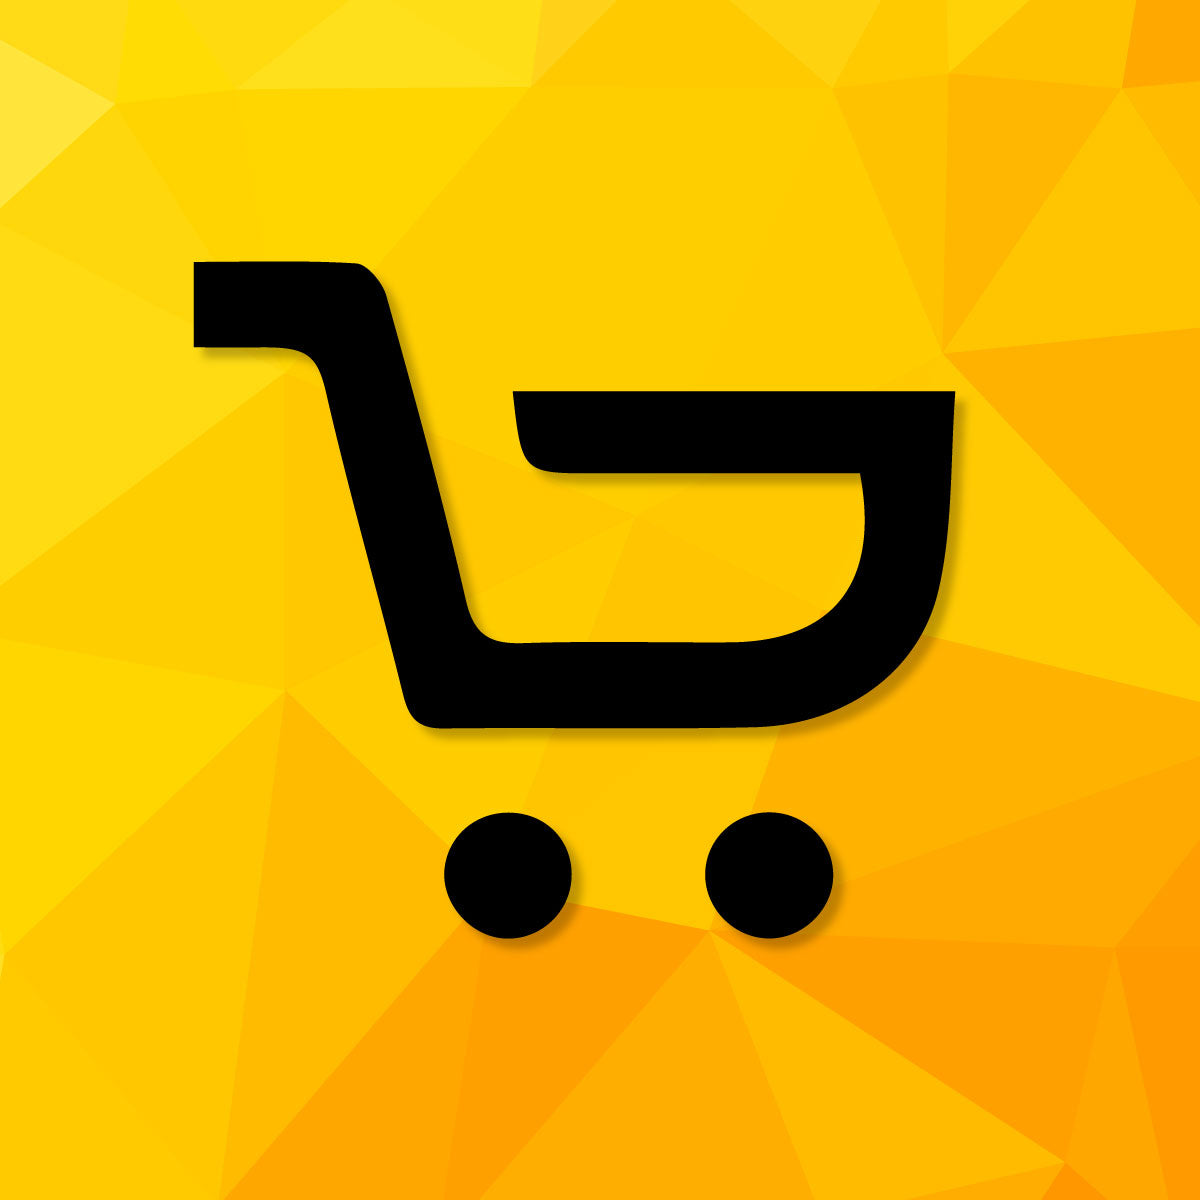 Hire Shopify Experts to integrate Cart Button Animator Ultimate app into a Shopify store